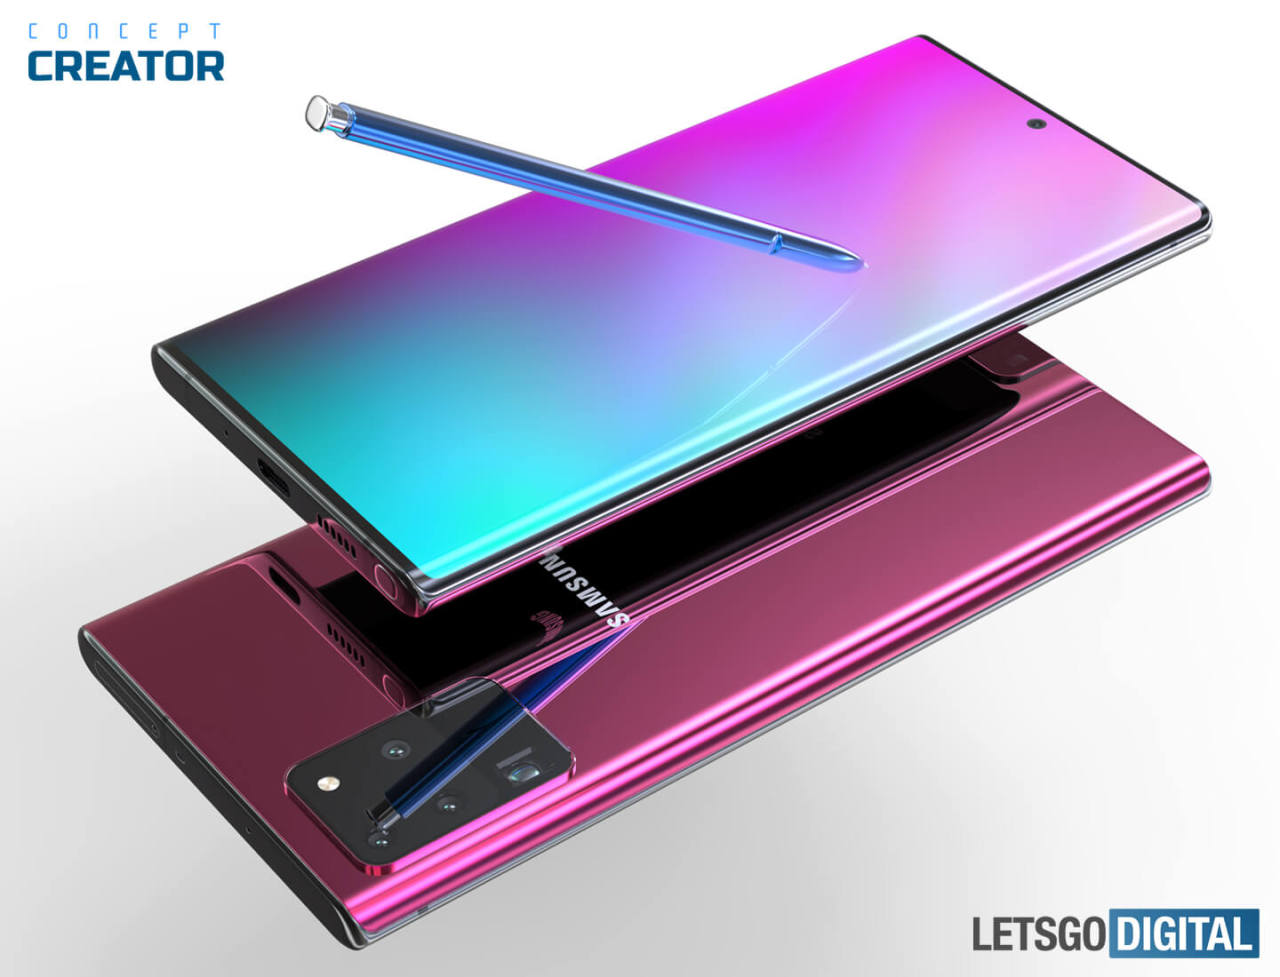 Galaxy Note 20 render (LetsGo Digital https://nl.letsgodigital.org/smartphones/samsung-galaxy-note-20-plus/)